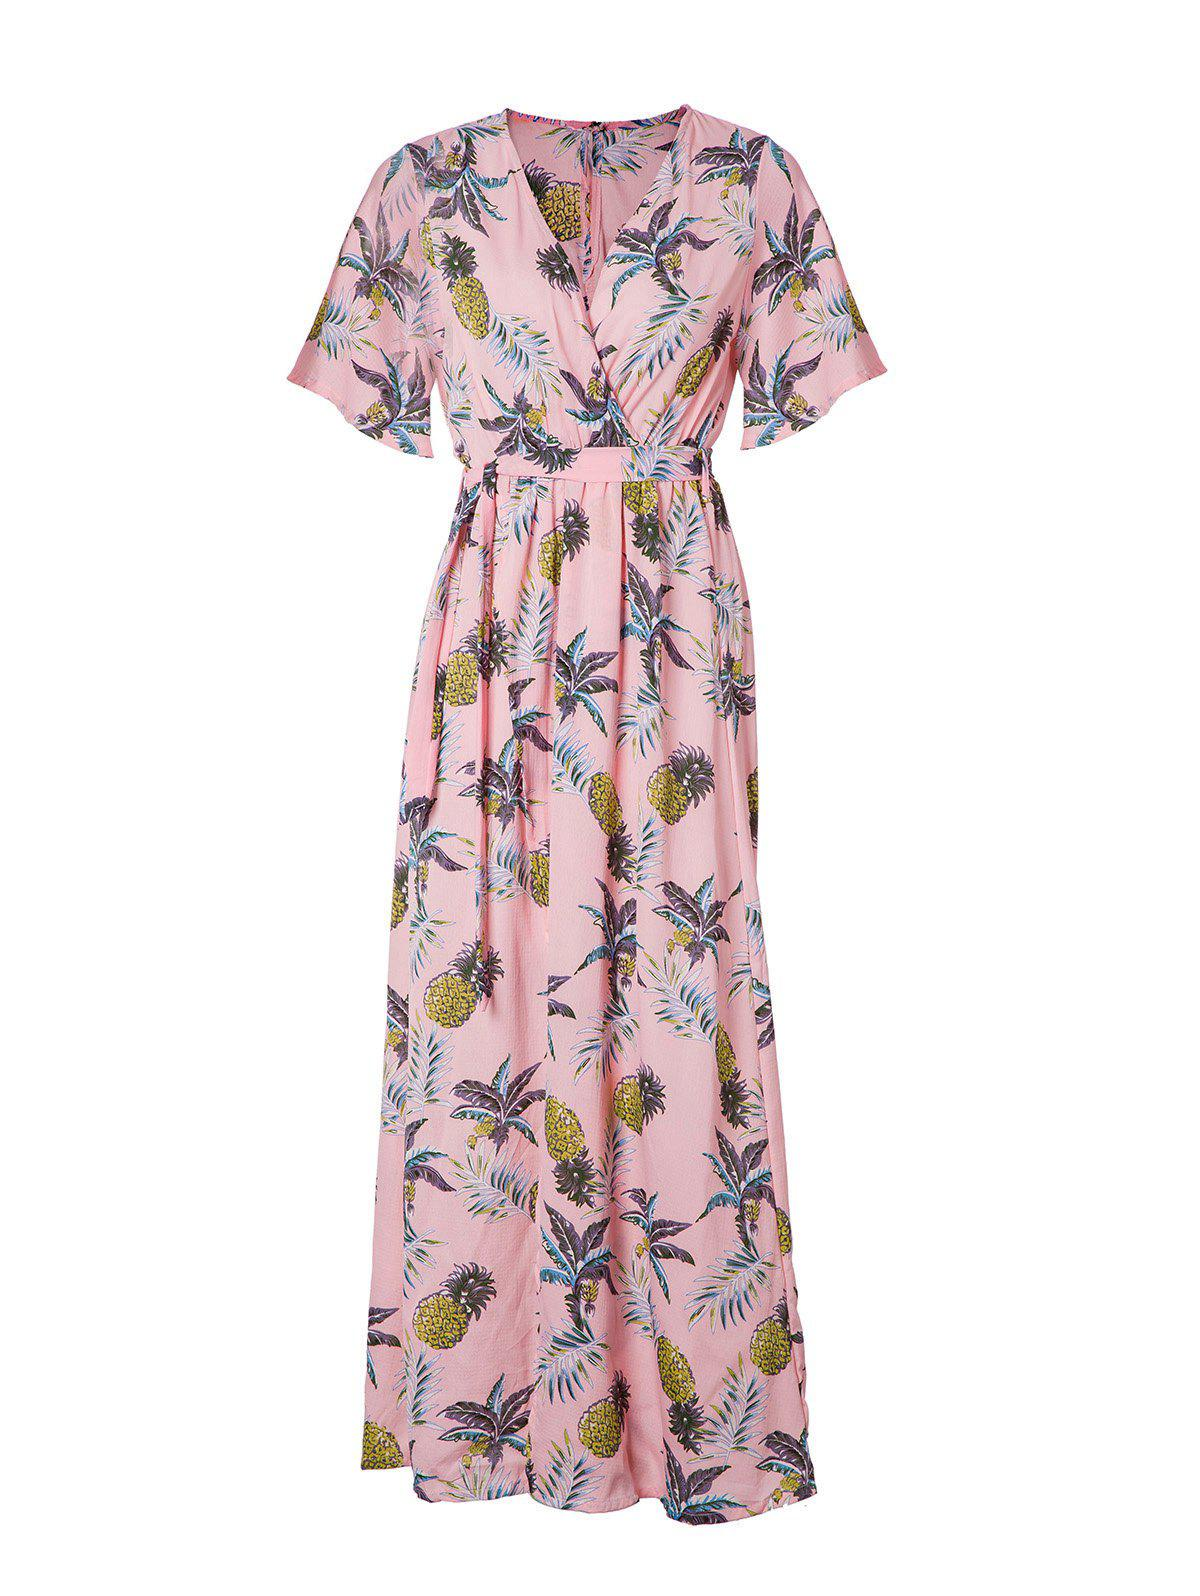 Women's V Neck Printed Sexy Chiffon Dress - LIGHT PINK M